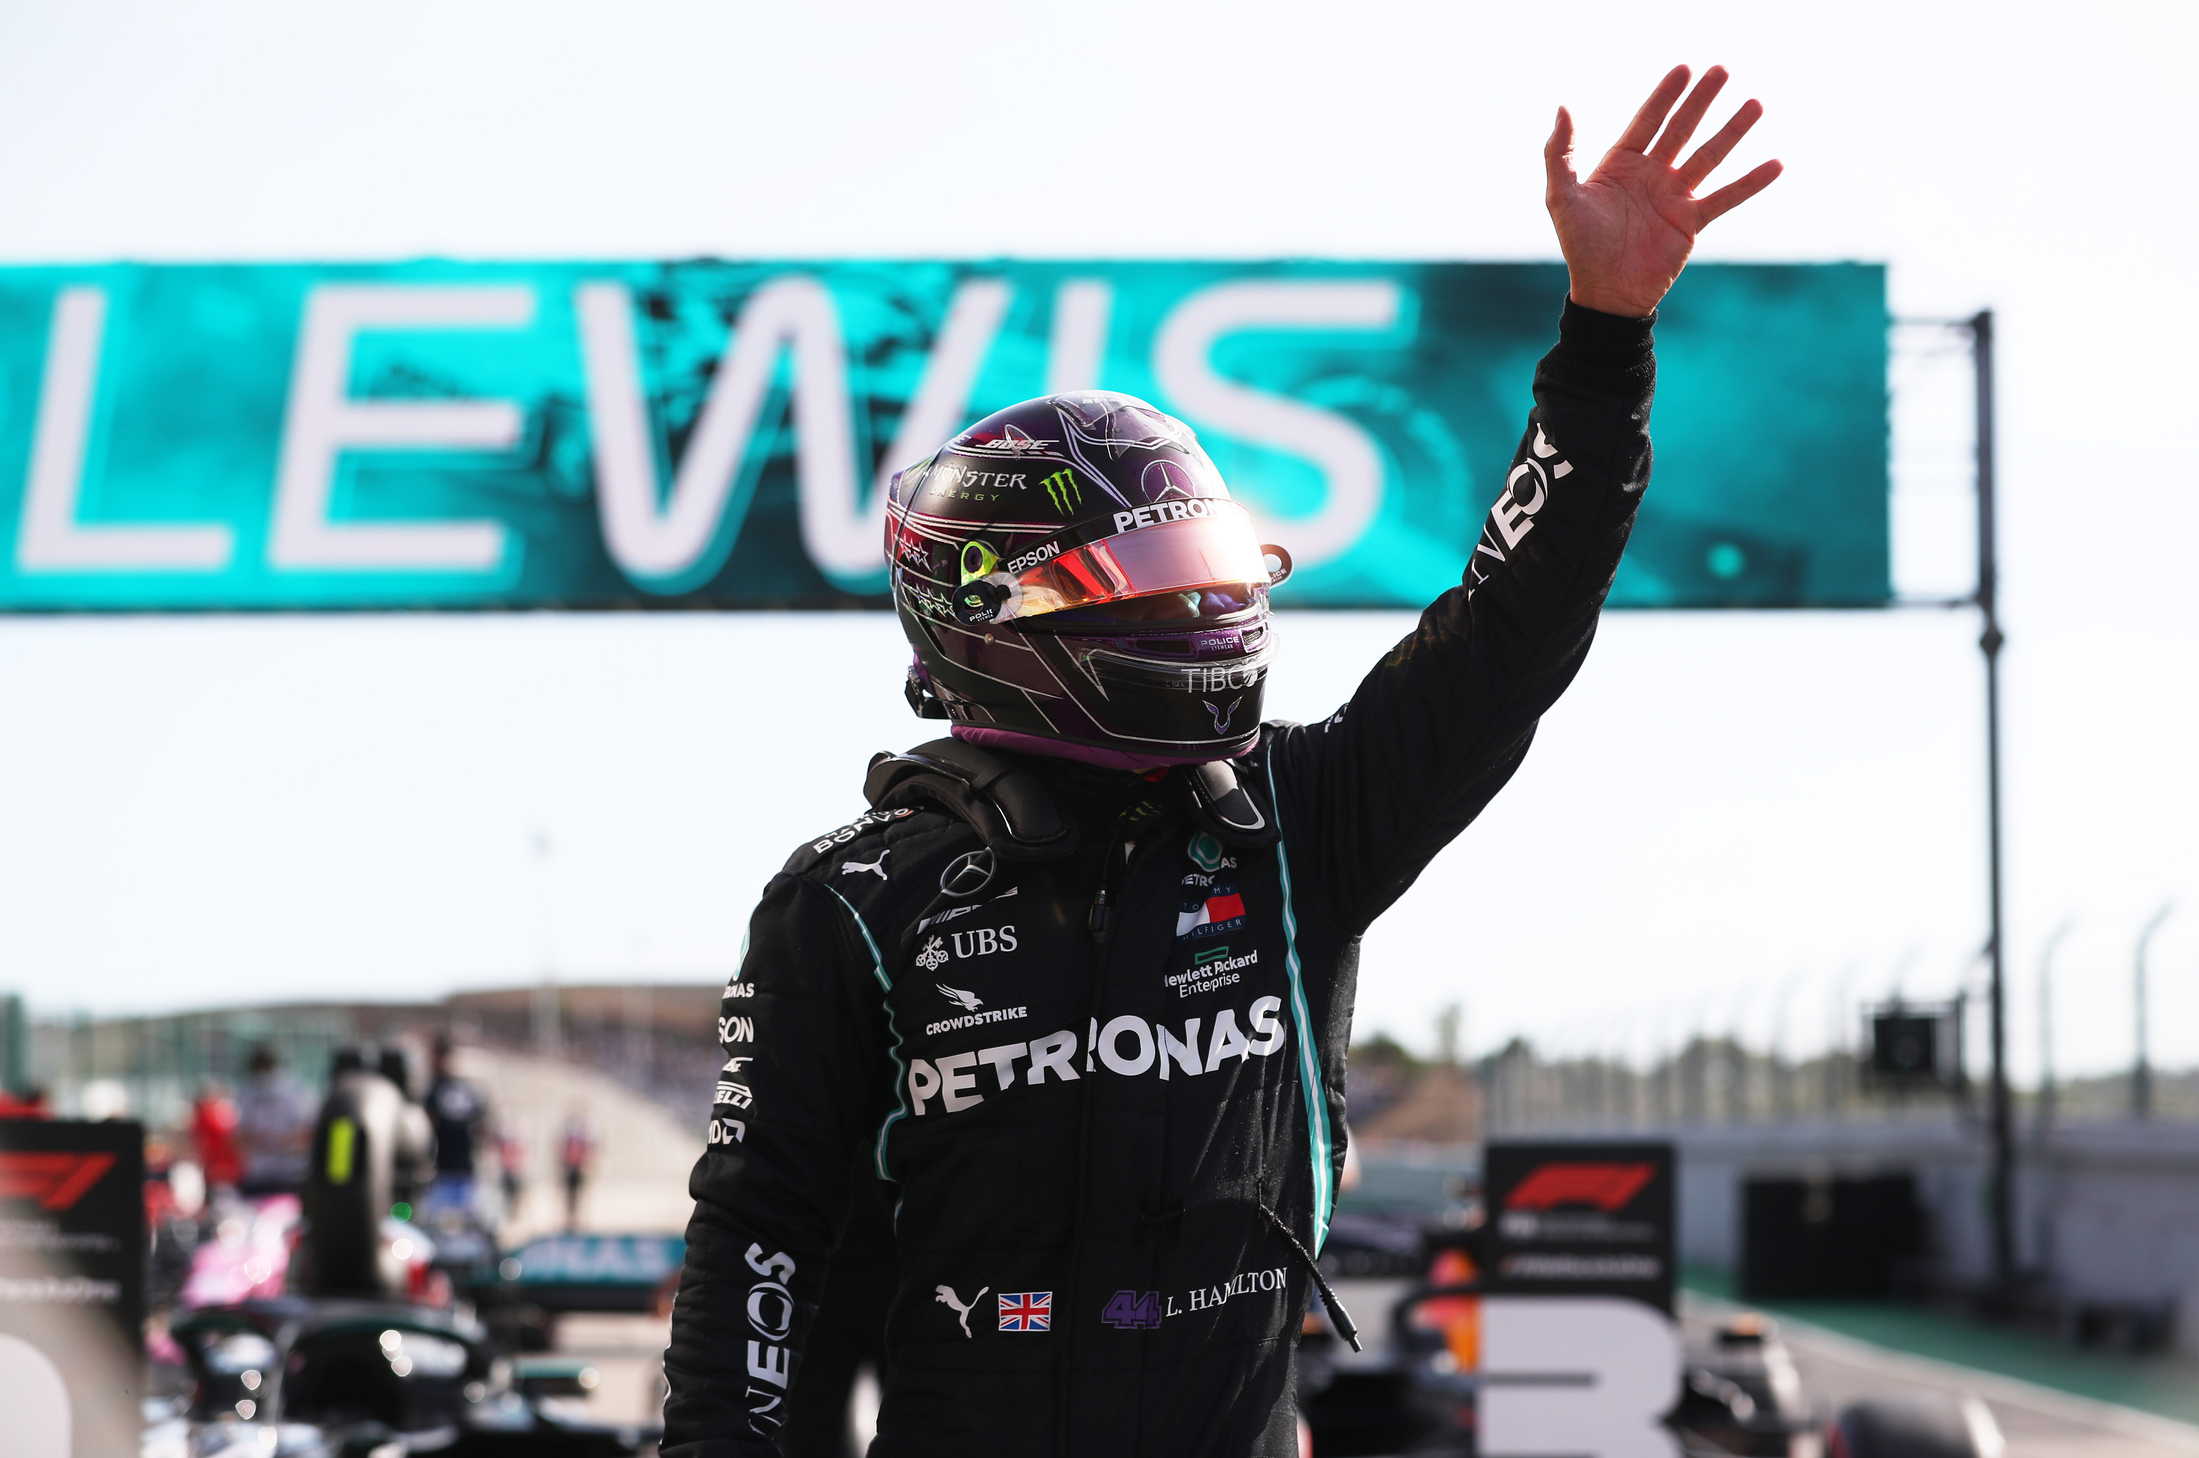 Lewis Hamilton considers Portimao as one of his favourite circuits